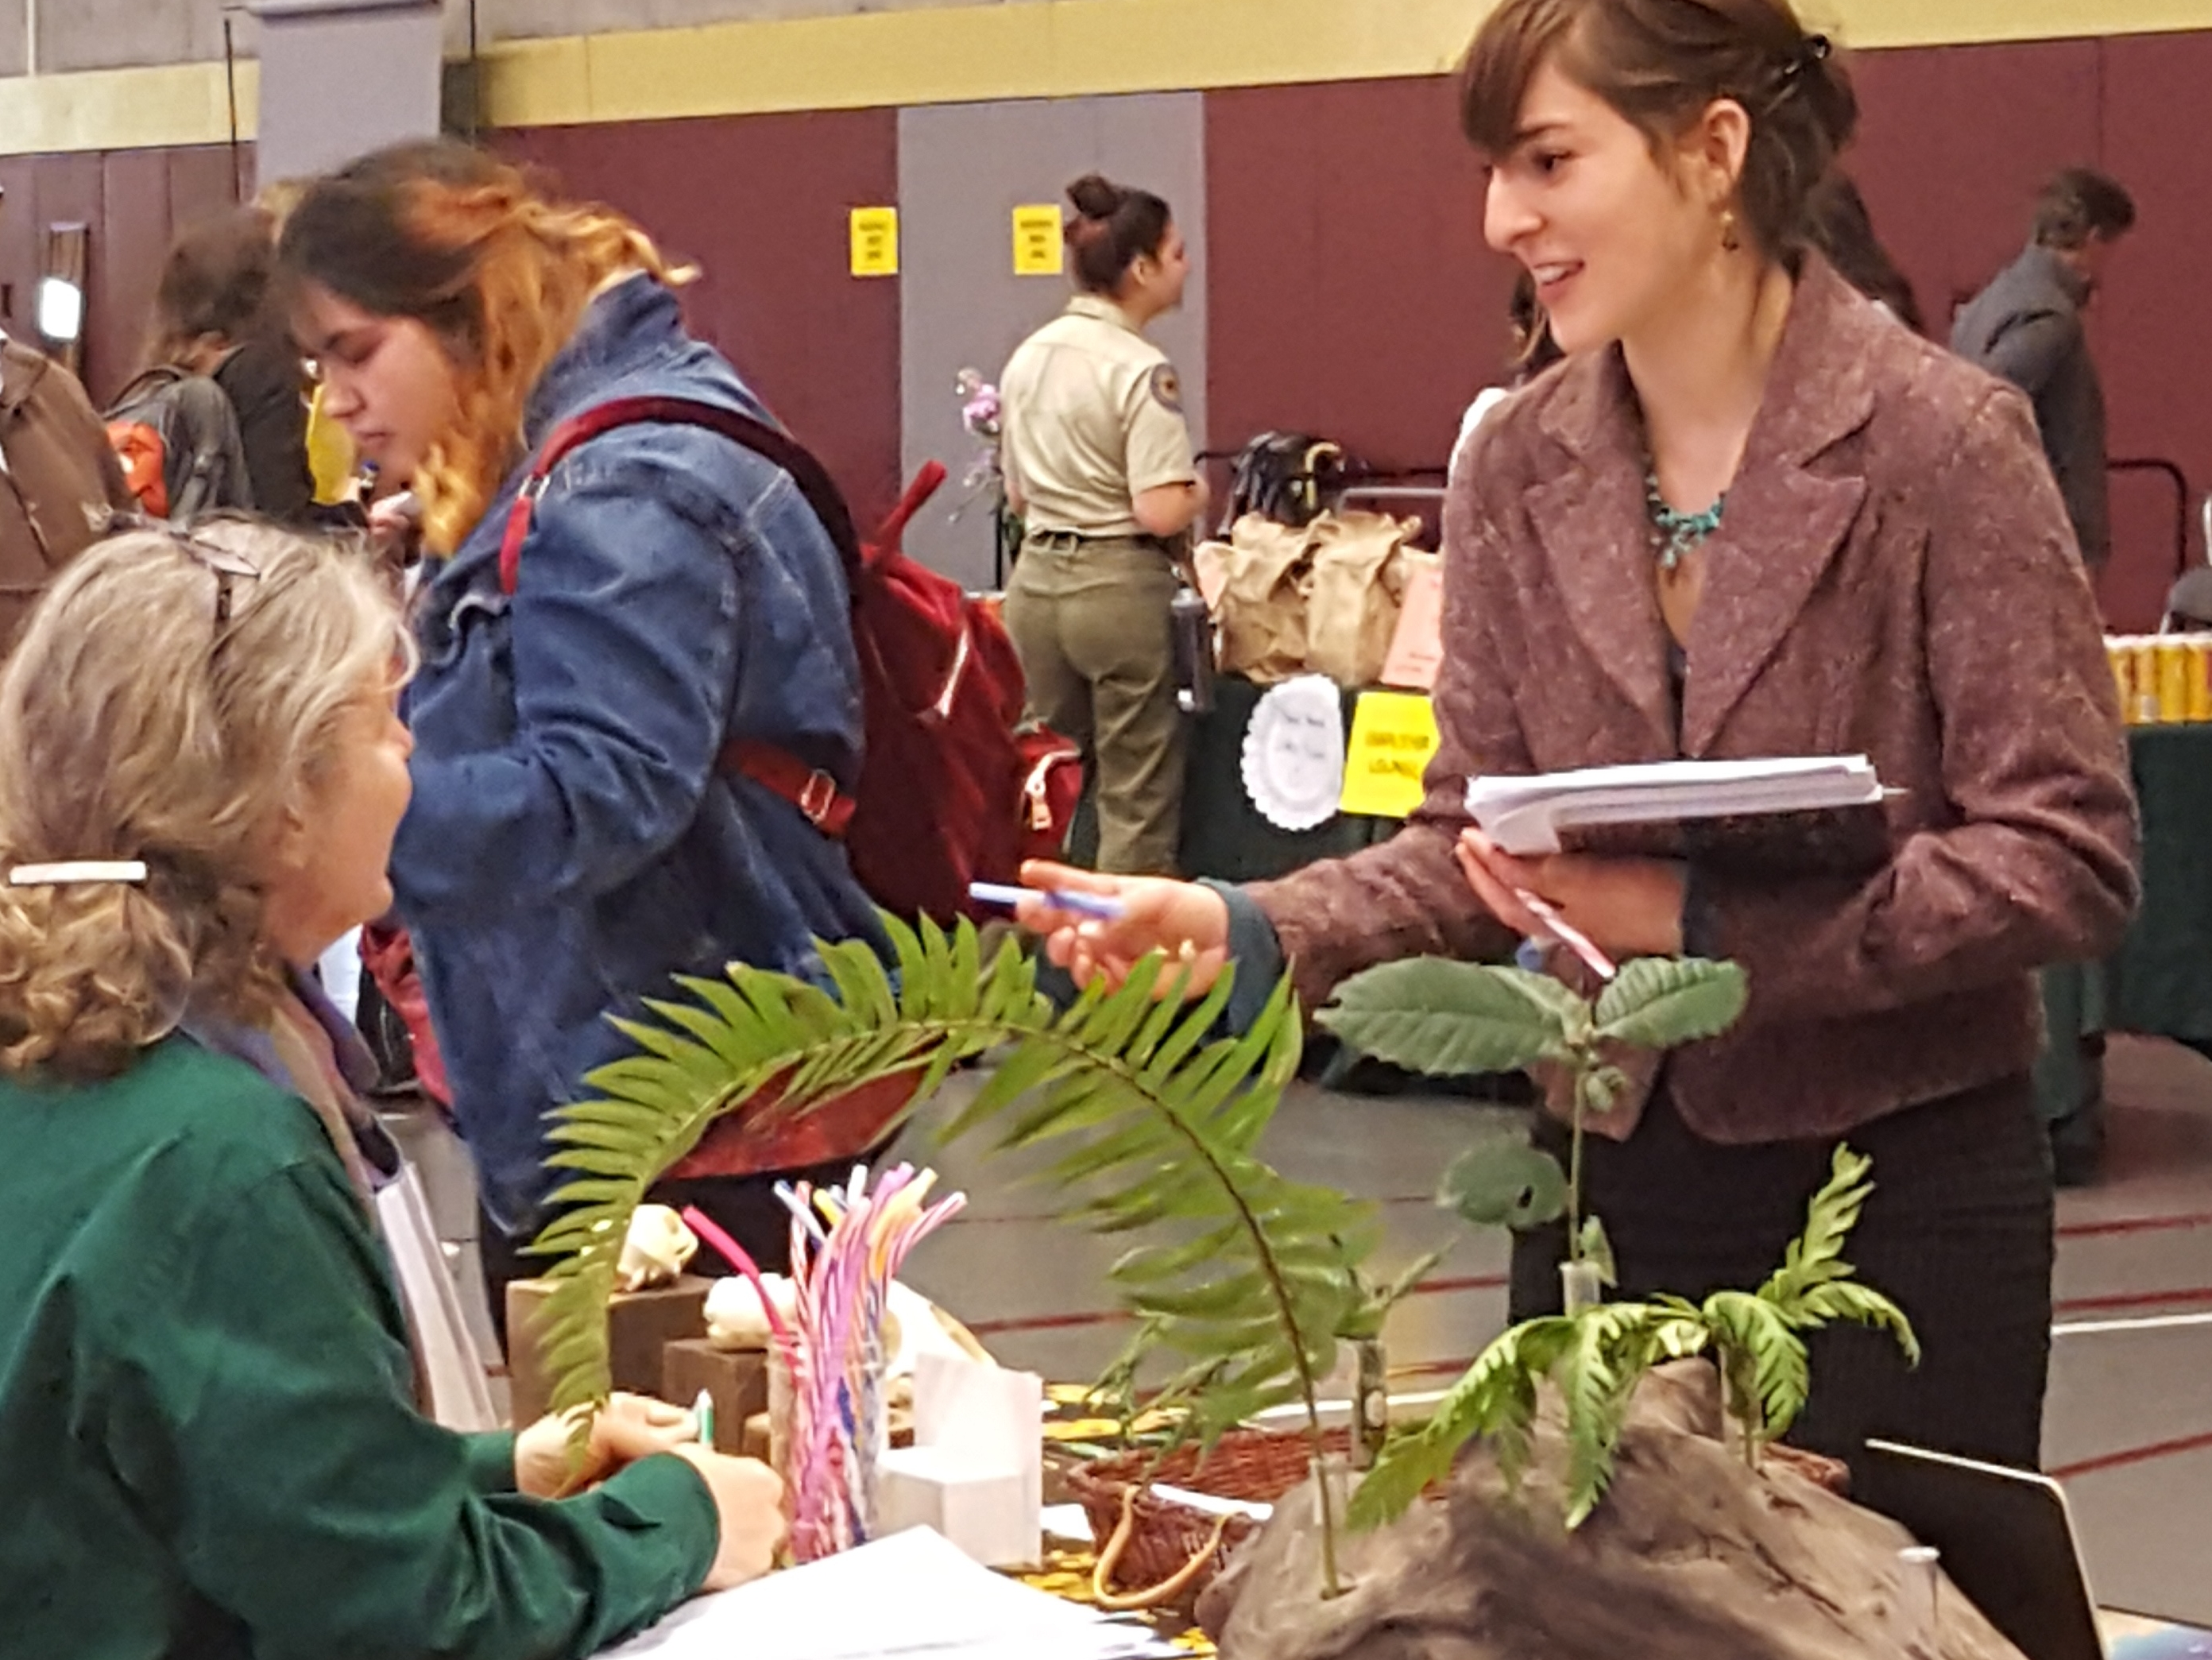 Expo tabling with plant